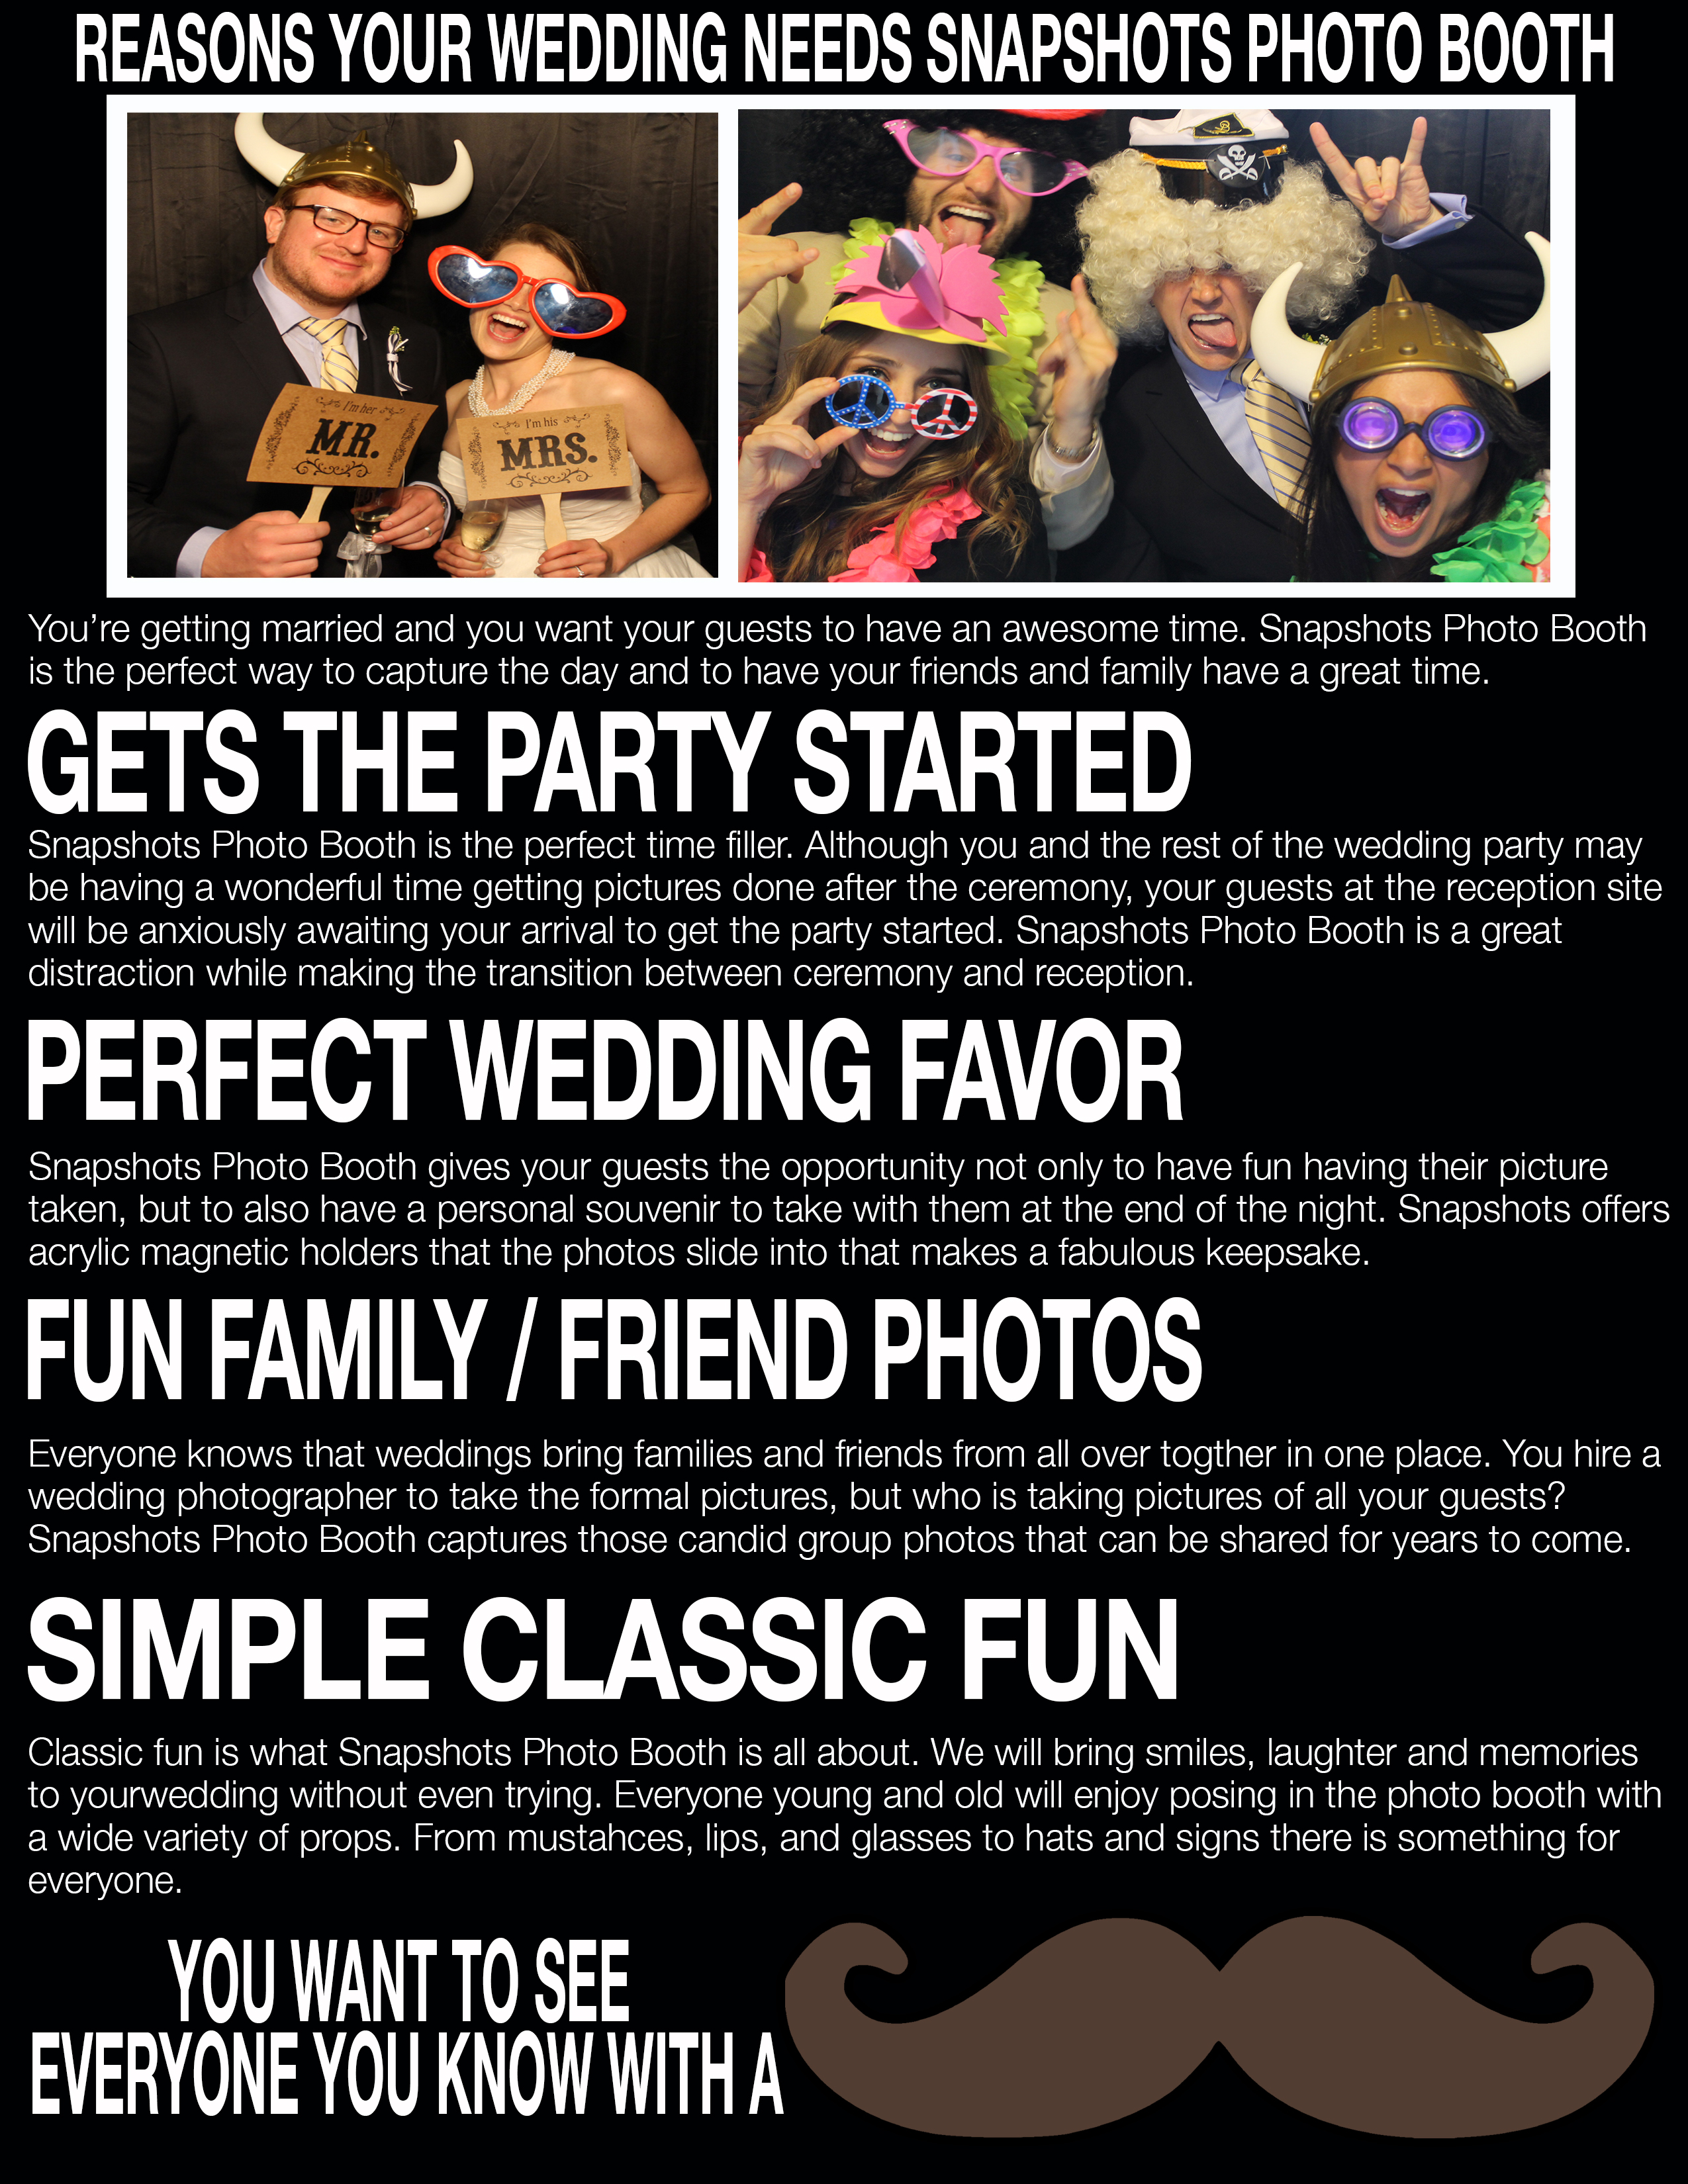 Why Snapshots Photo Booth is the Perfect Addition to Your Wedding